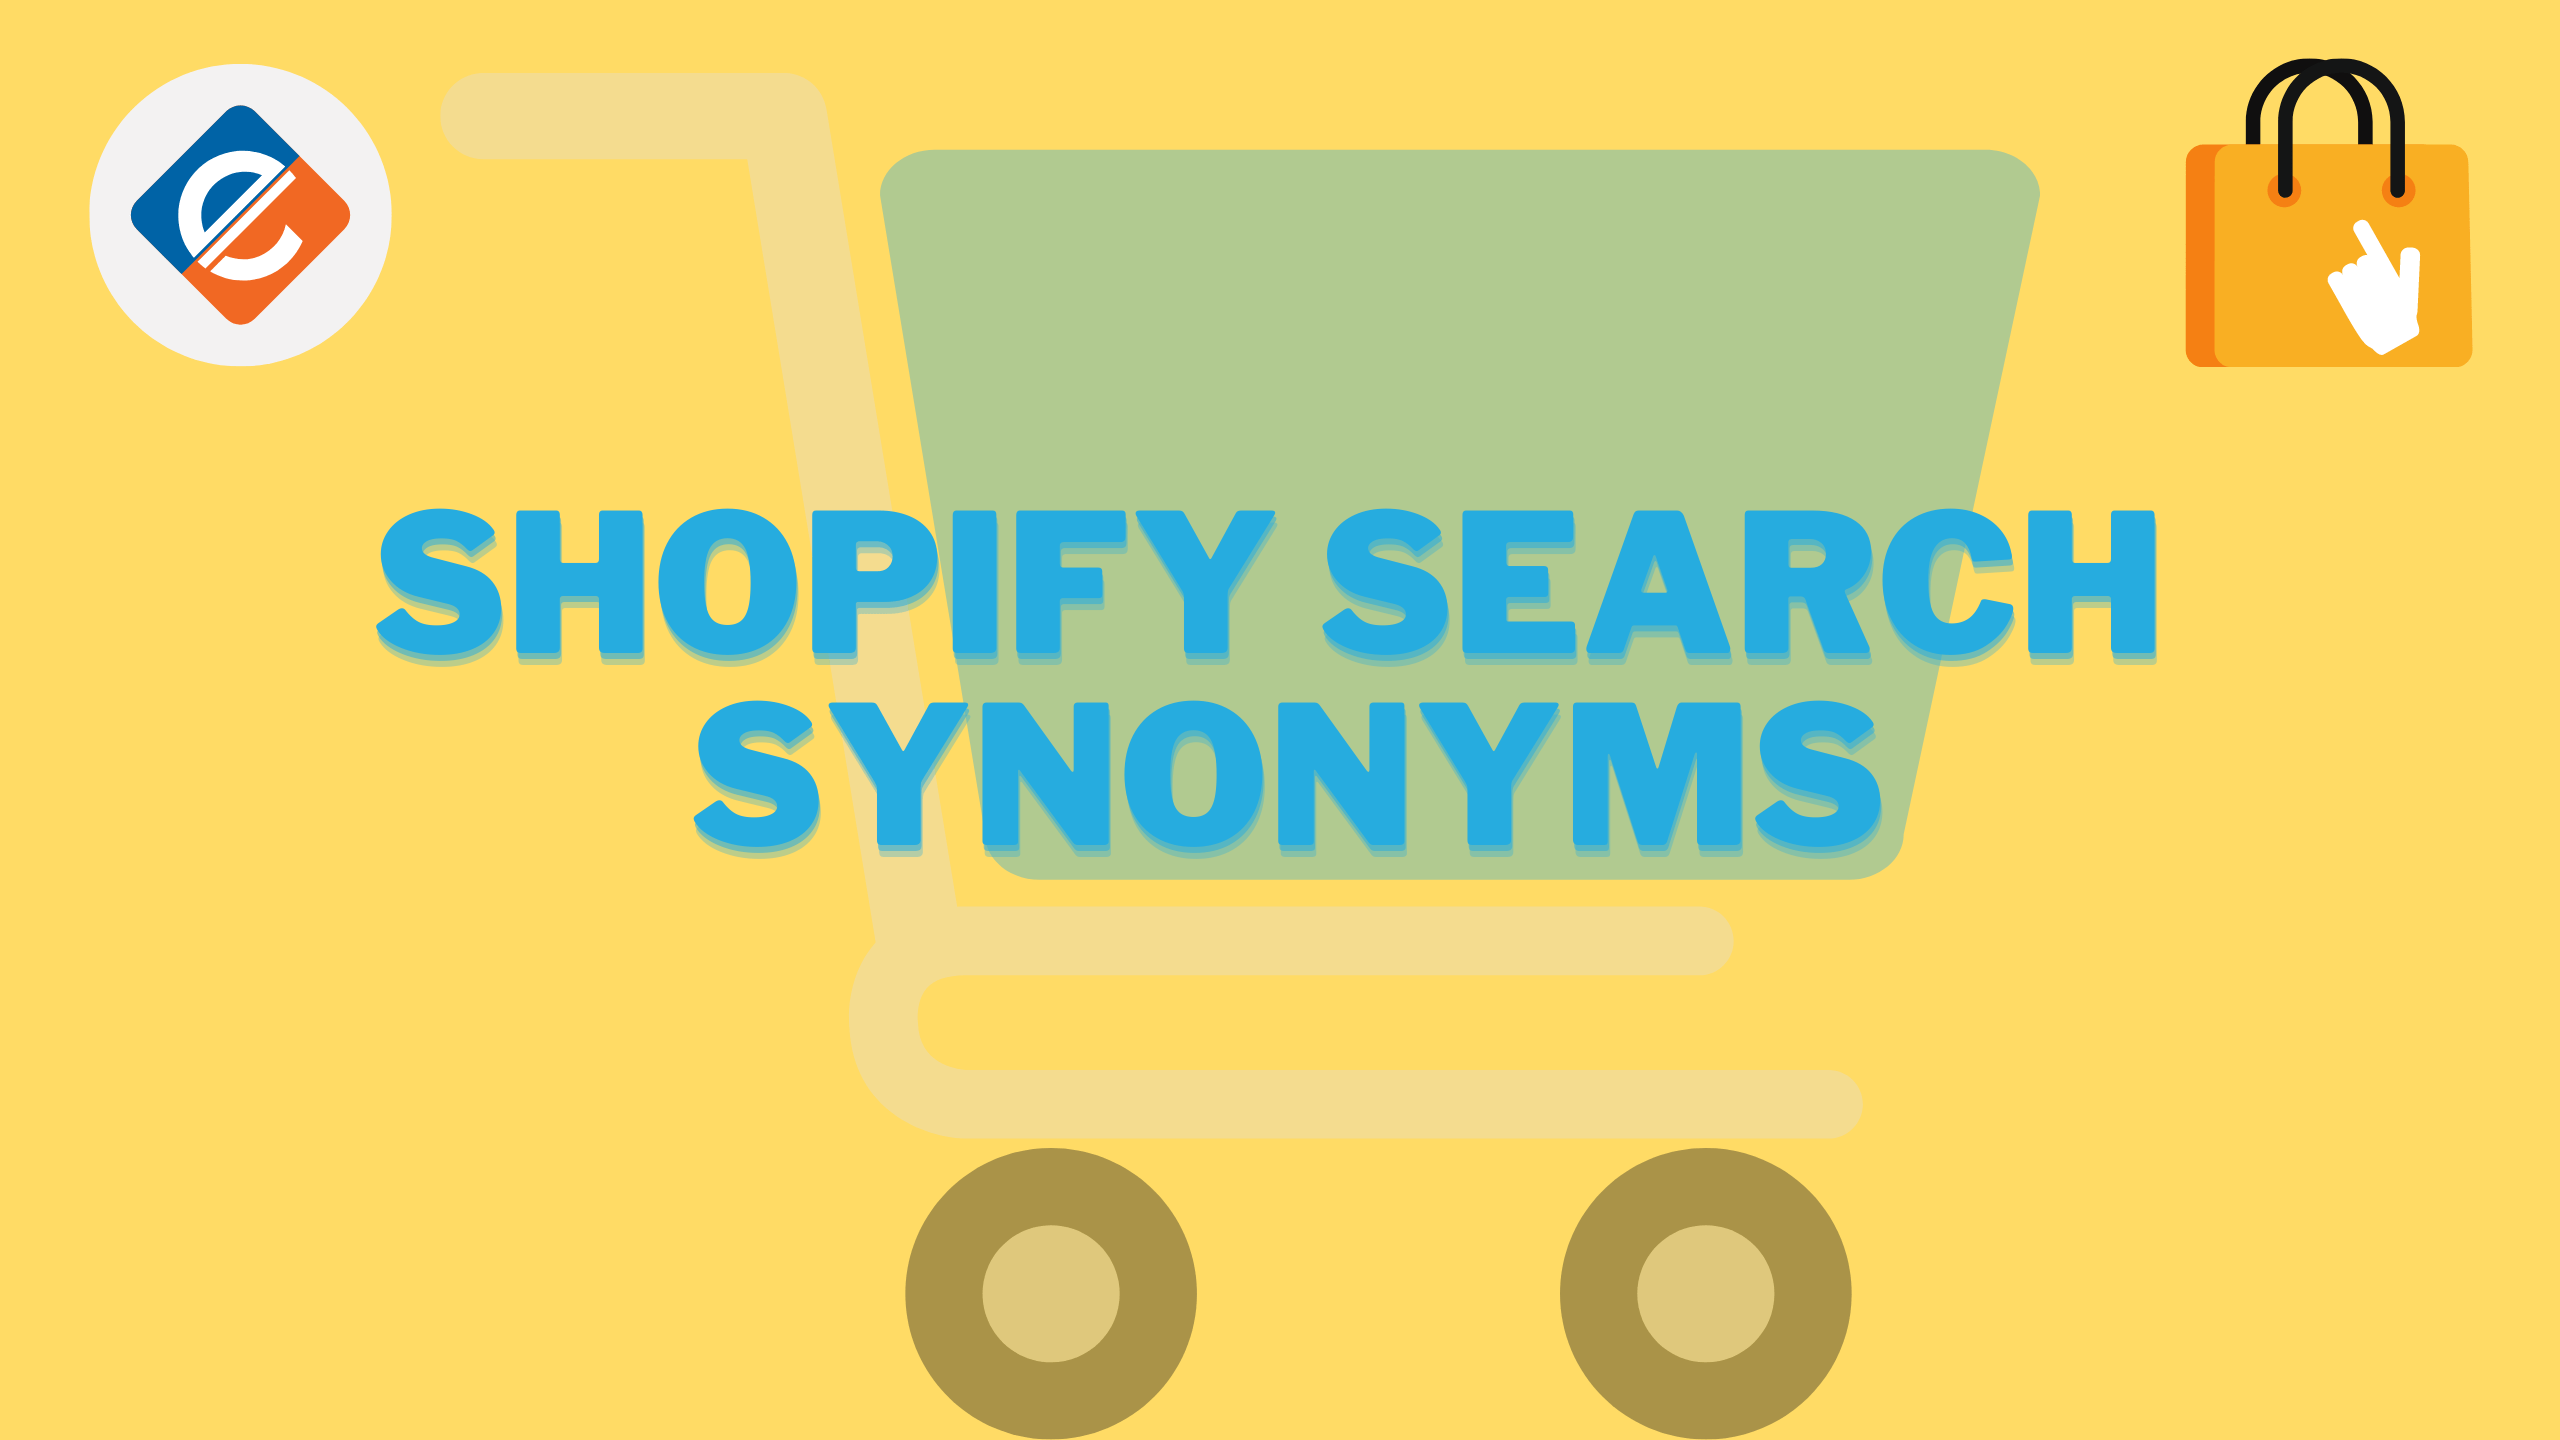 Shopify Search Synonyms